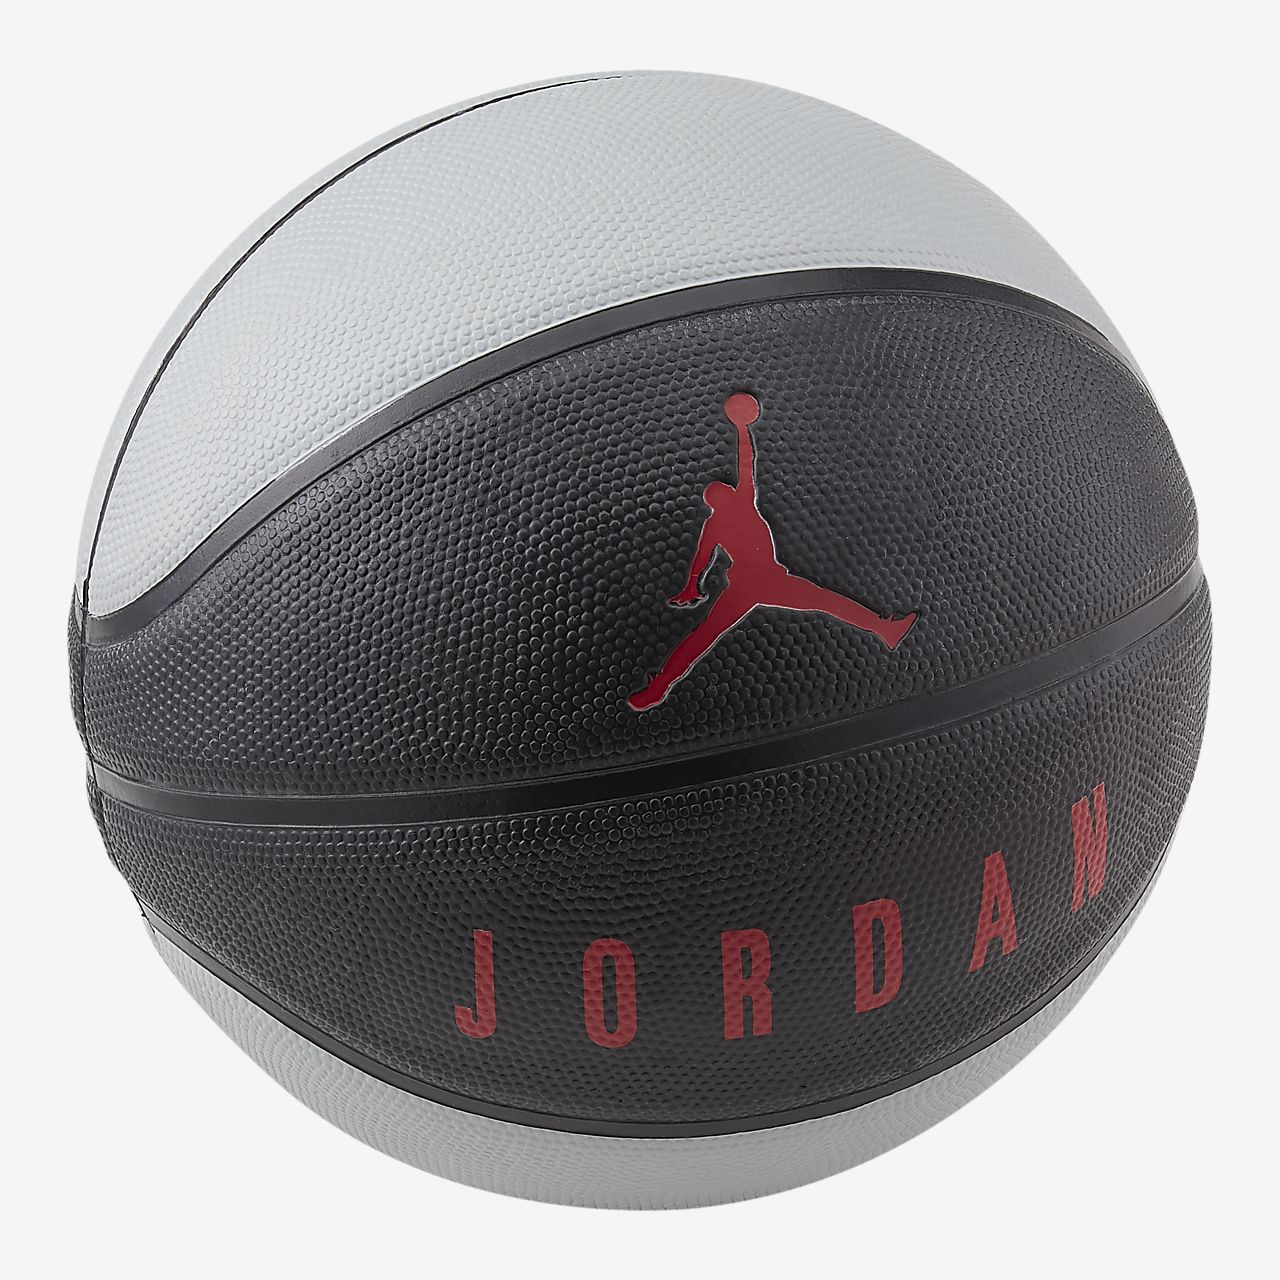 Jordan Playground 8P Basketball